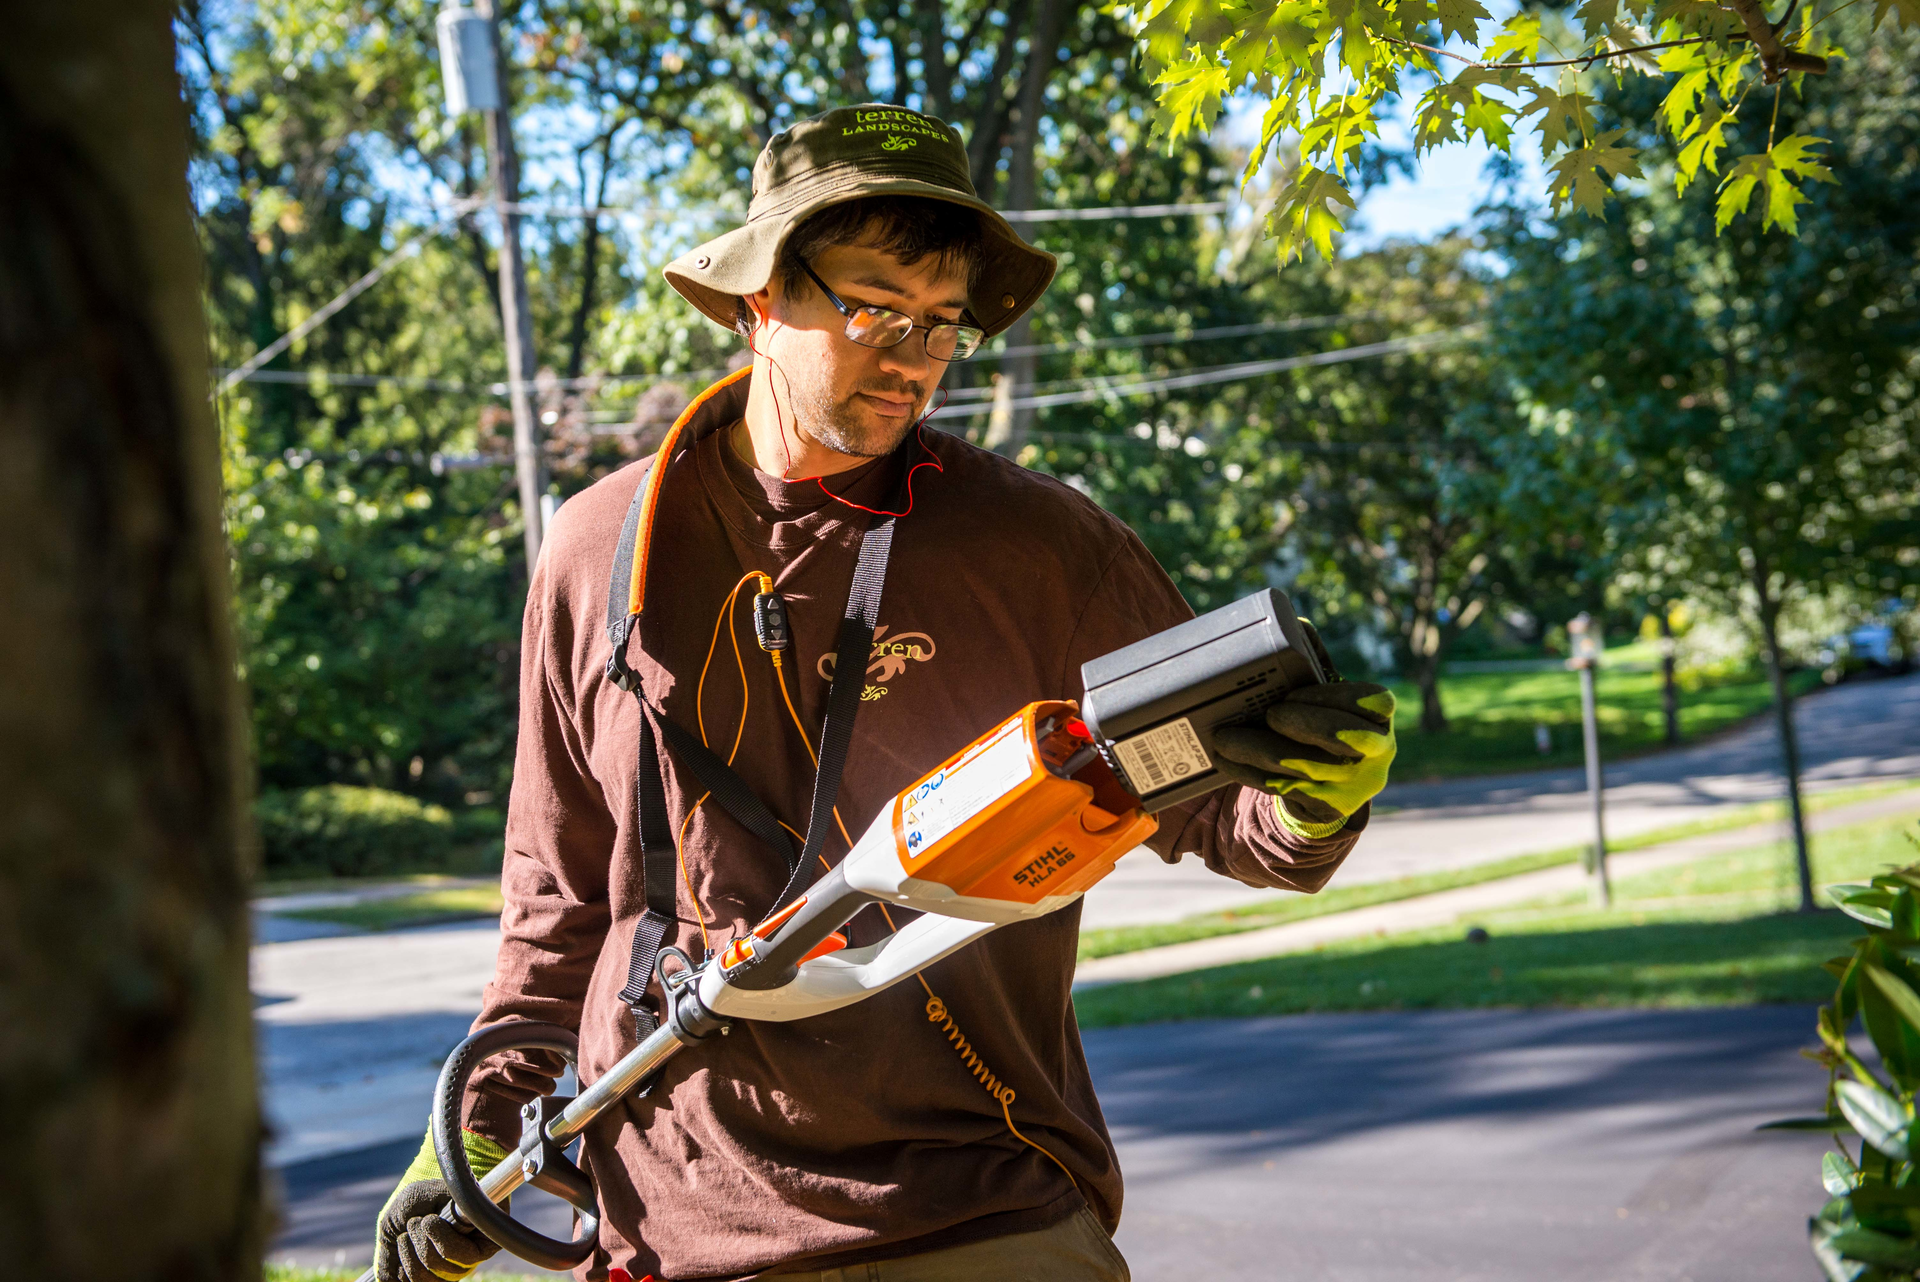 terren landscapes employee replacing the battery on a string trimmer